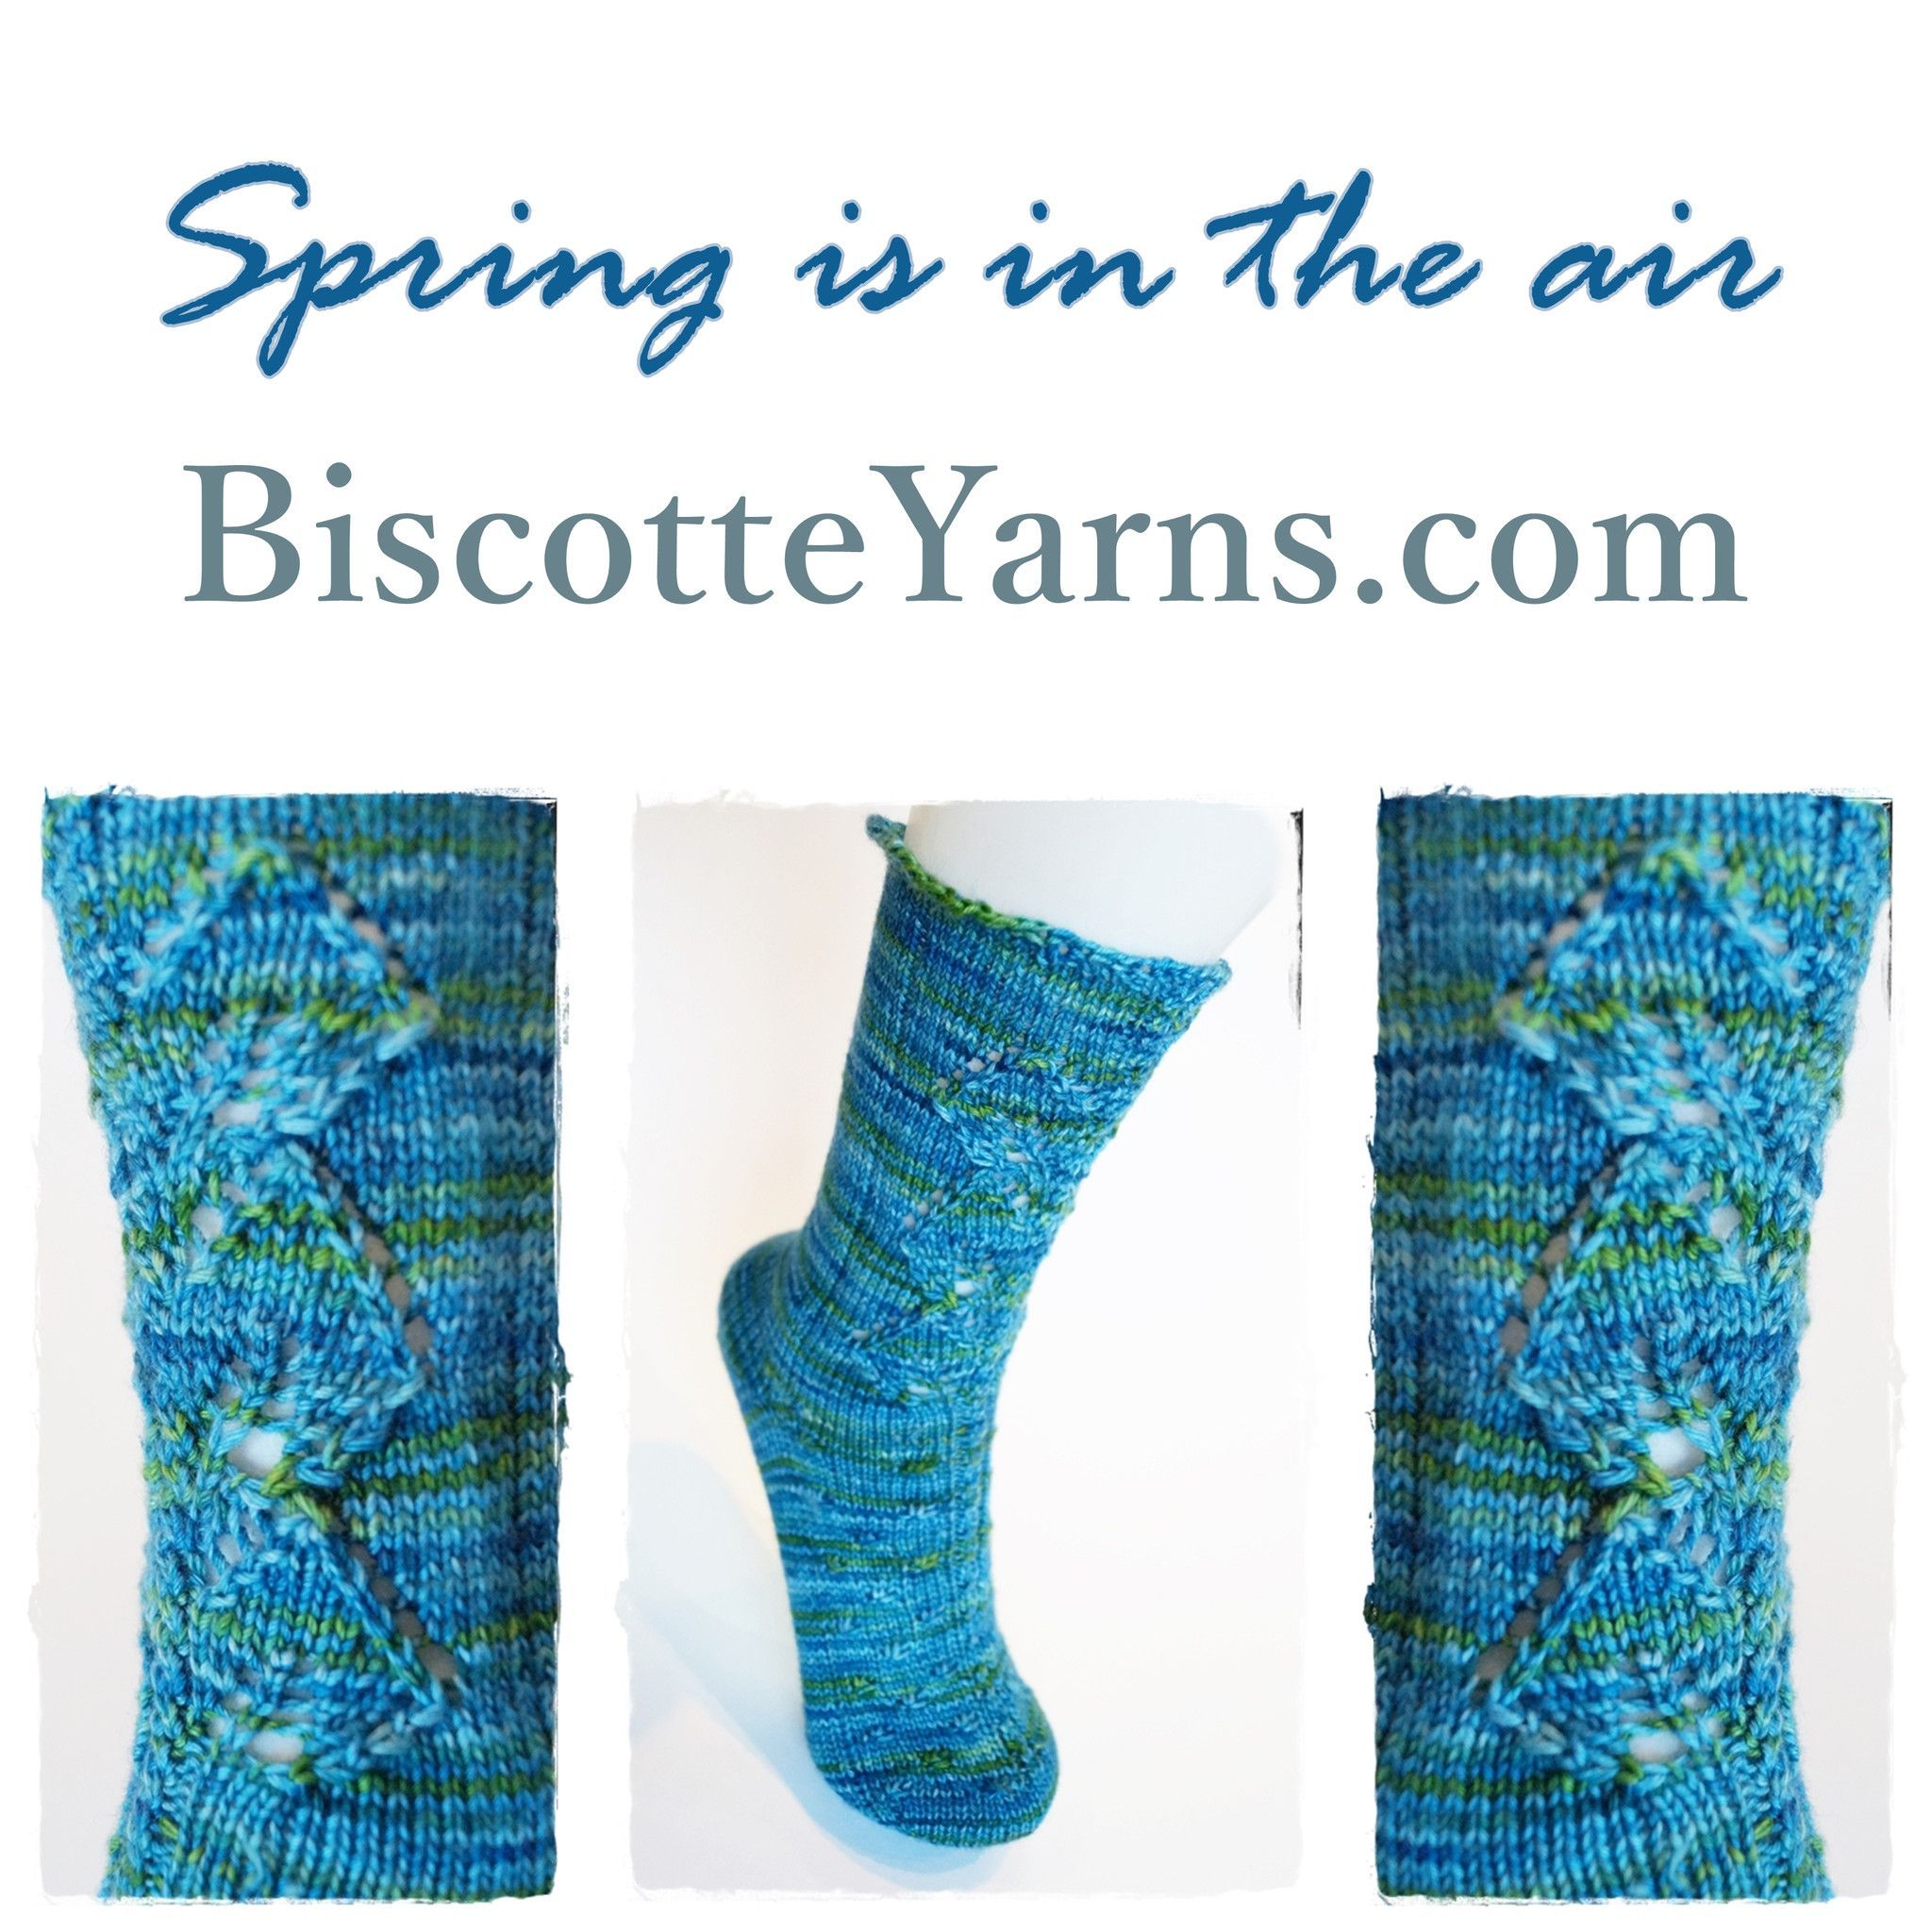 https://biscotteyarns.com/ daily https://biscotteyarns.com/products ...